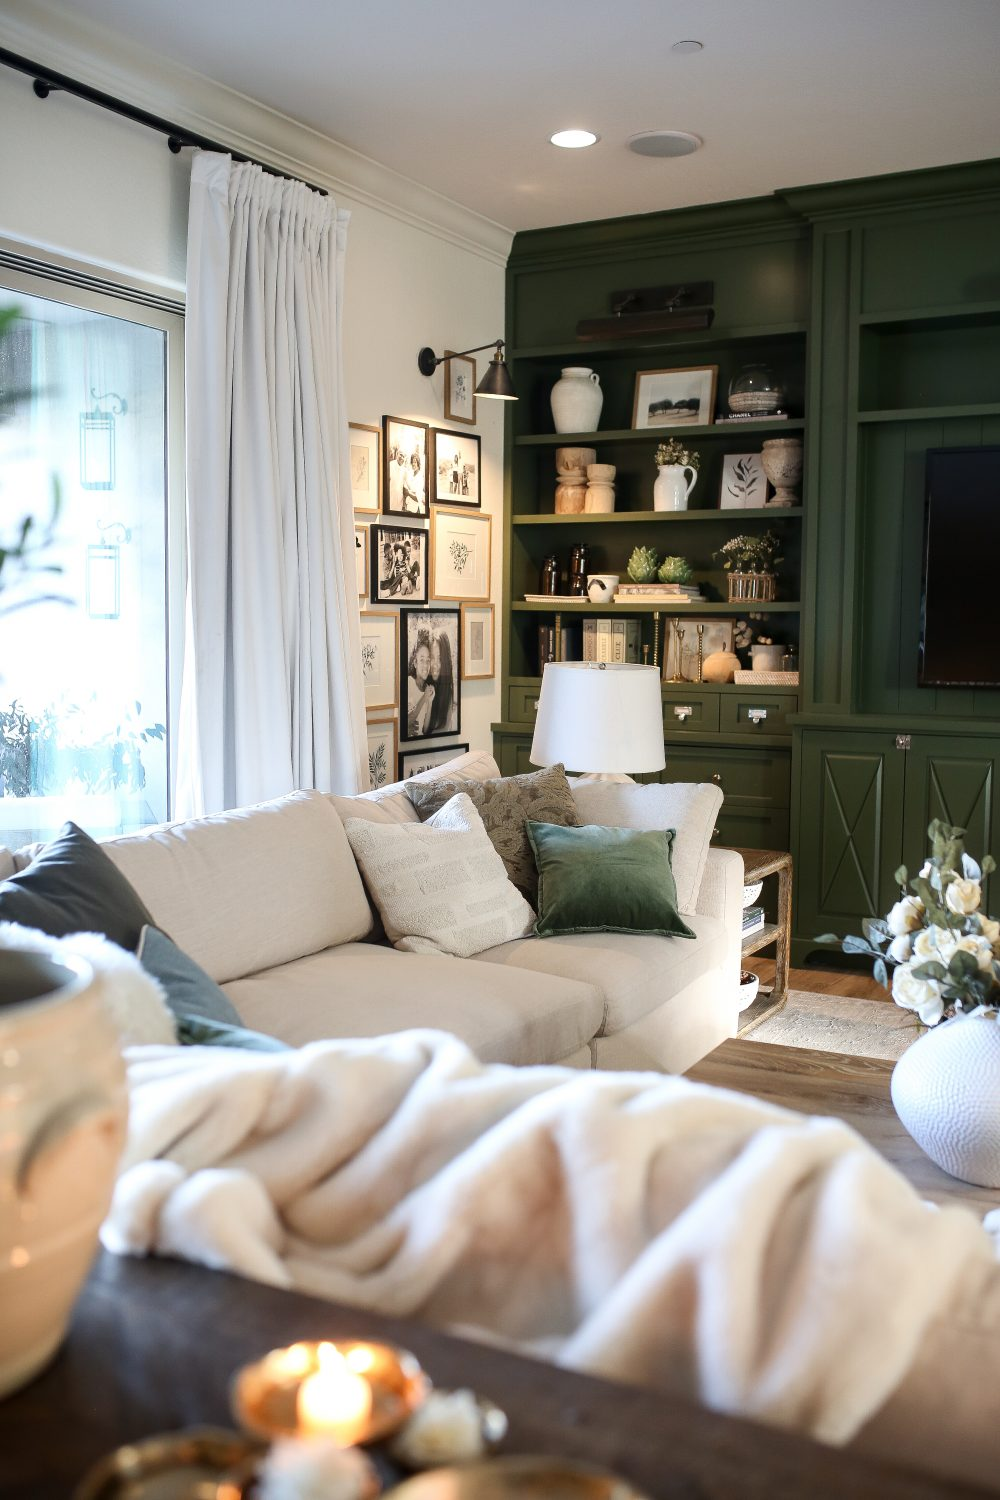 Arhaus Sectional Review: FINALLY! A Beautiful, Cozy Sectional We Actually LOVE